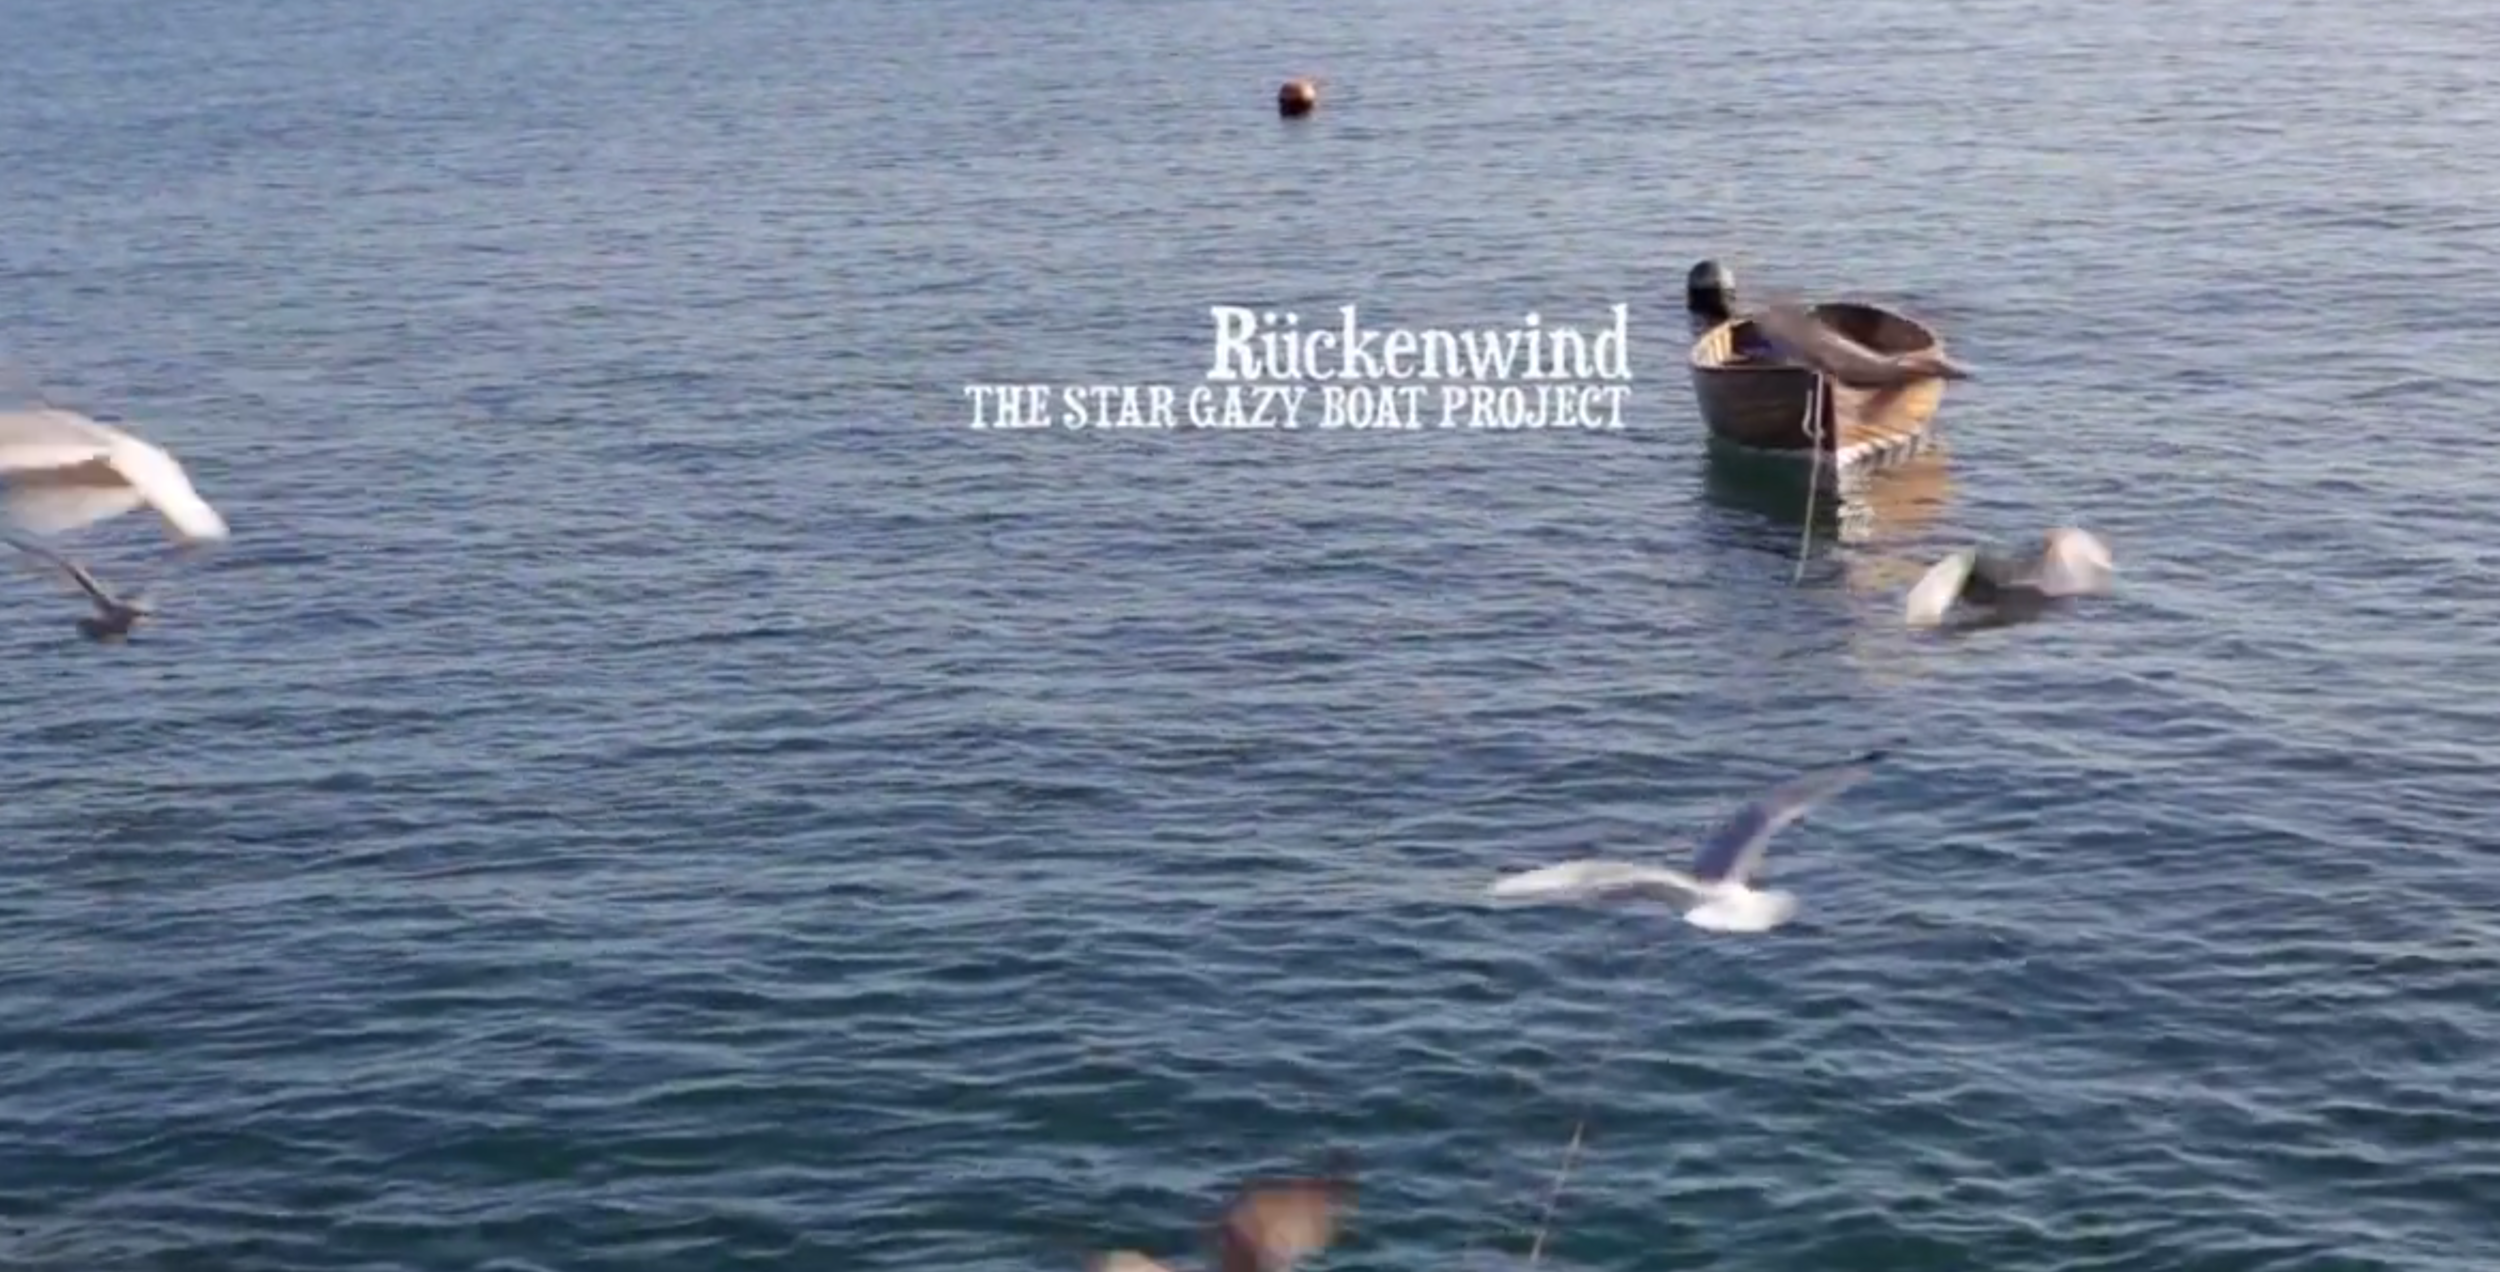 The Star Gazy Boat Project Project